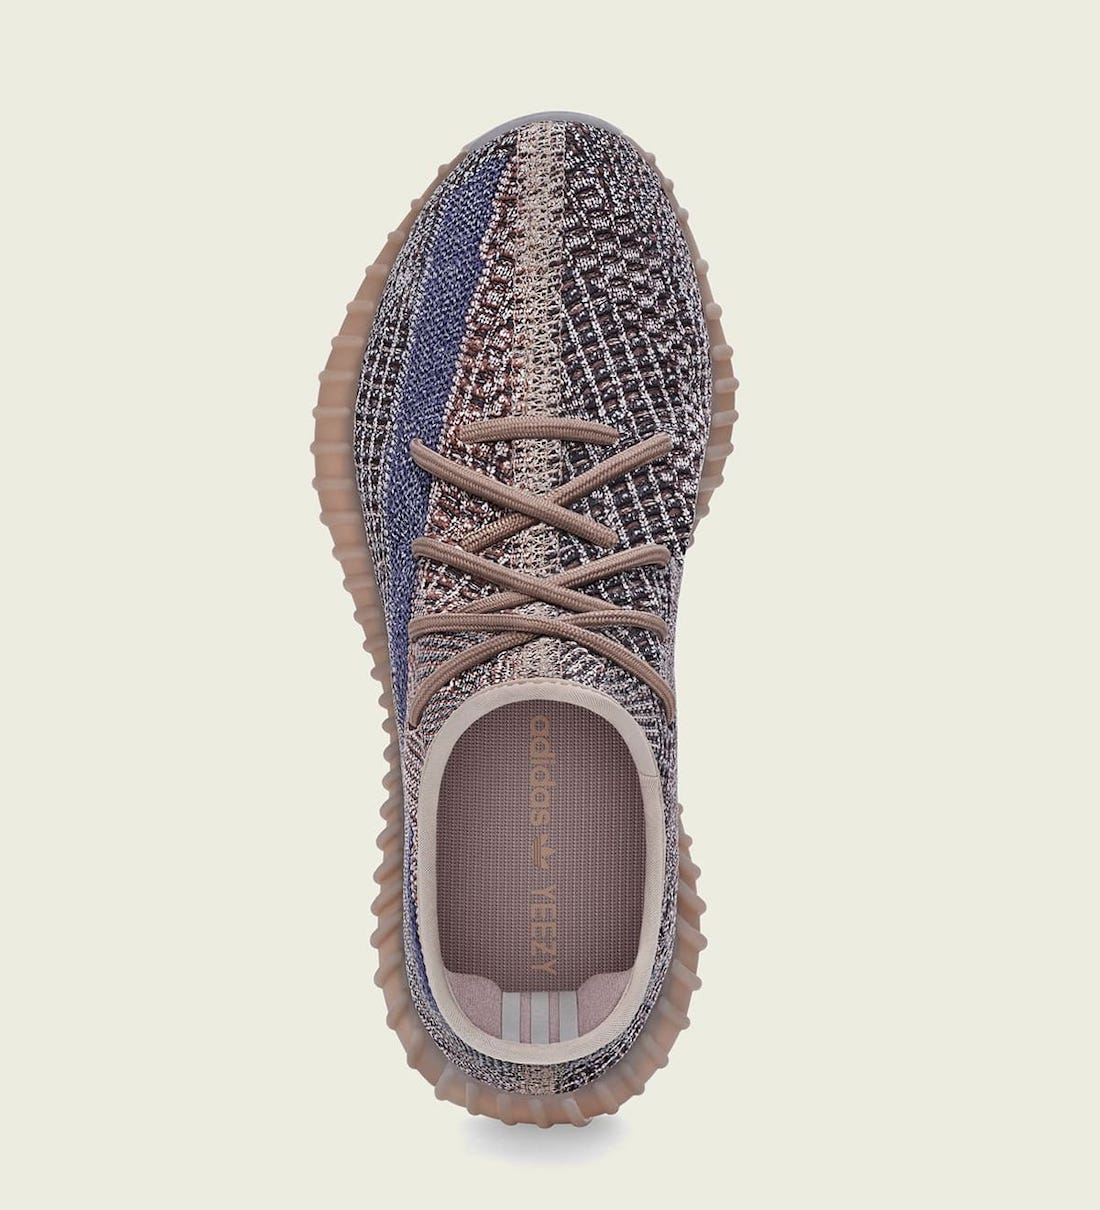 adidas Yeezy Boost 350 V2 Fade H02795 Release Date Price